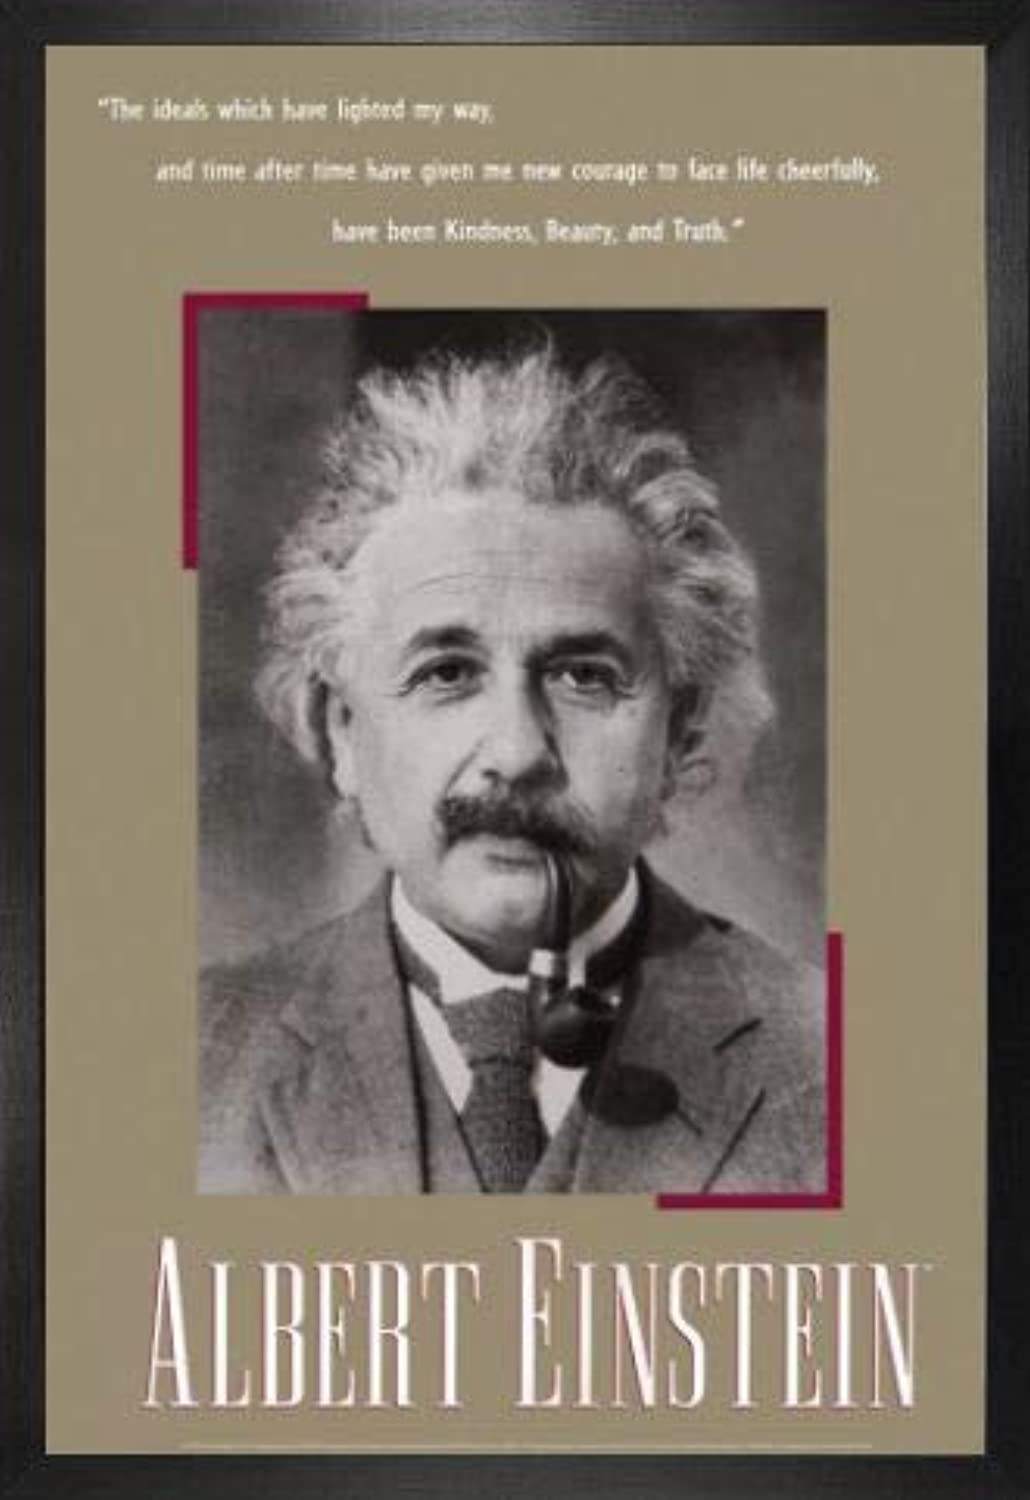 1art1 Albert Einstein Poster und MDF-Rahmen - Kindness, Beauty and Truth (with Pipe) (91 x 61cm)